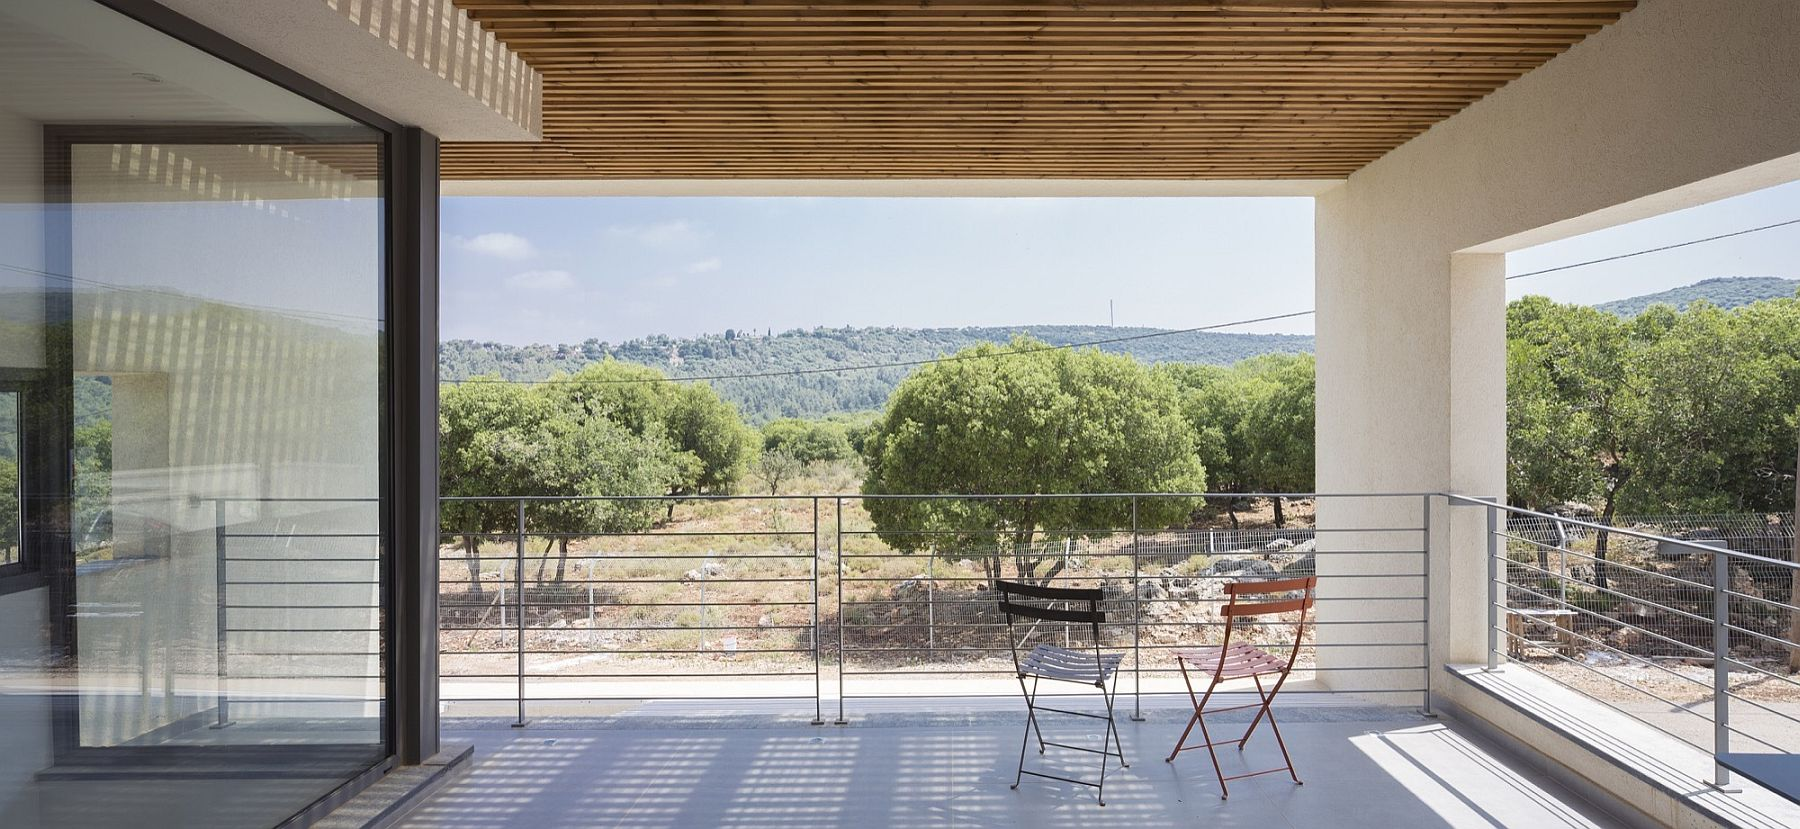 Gorgeous covered deck that overlooks the landscape and beyond